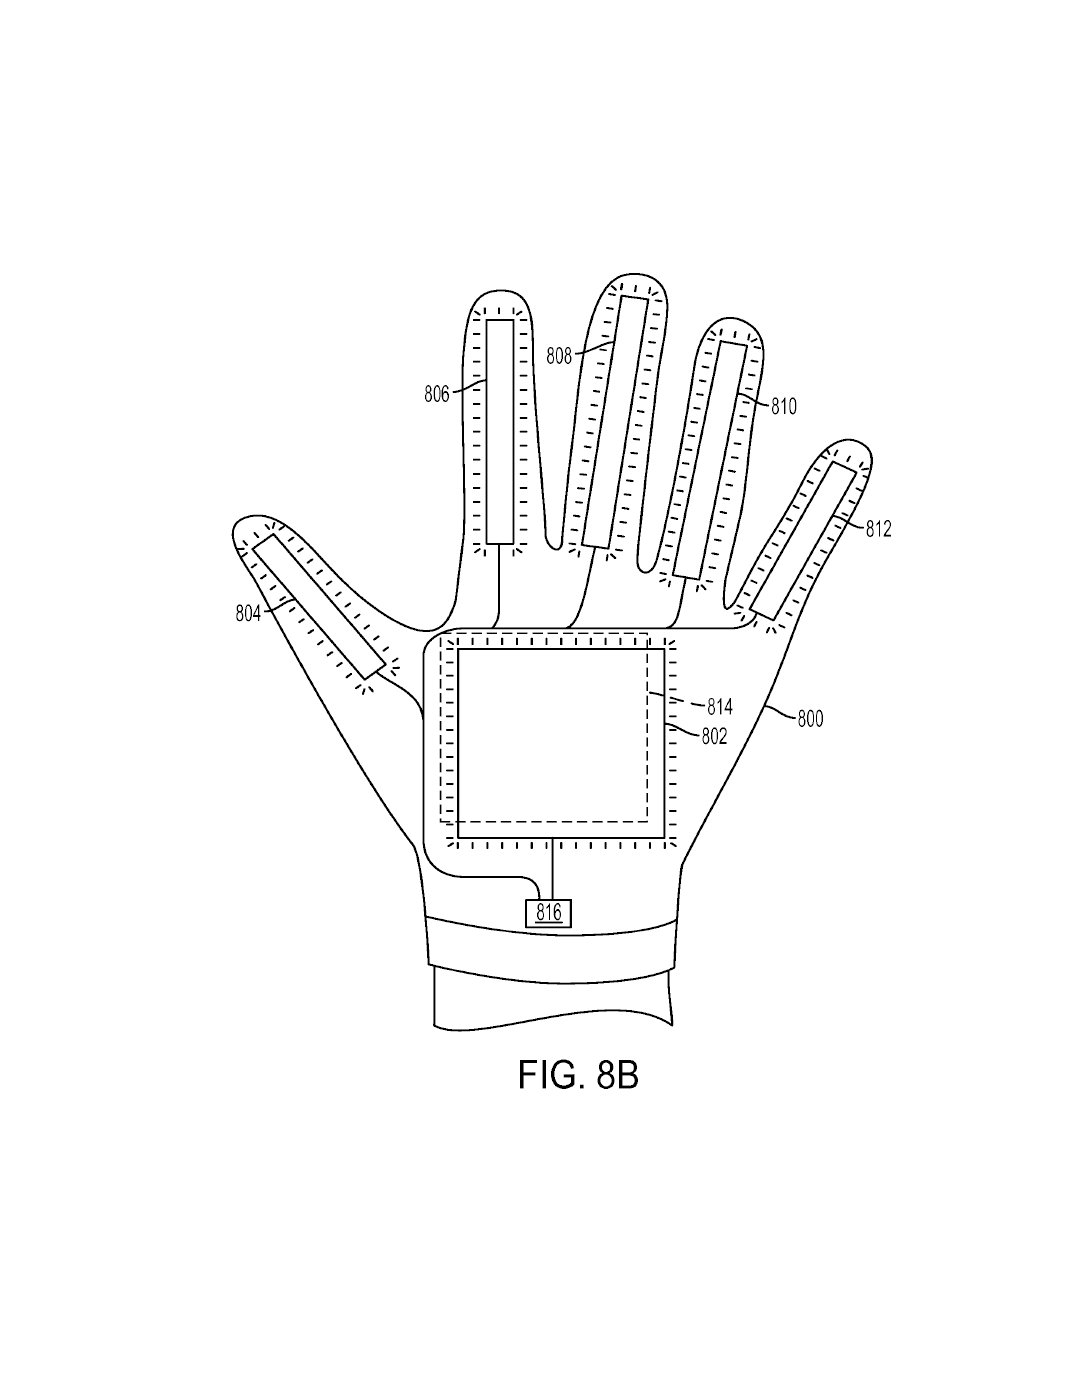 Sony Files Three Patents For Glove Controller For Use With Playstation Vr